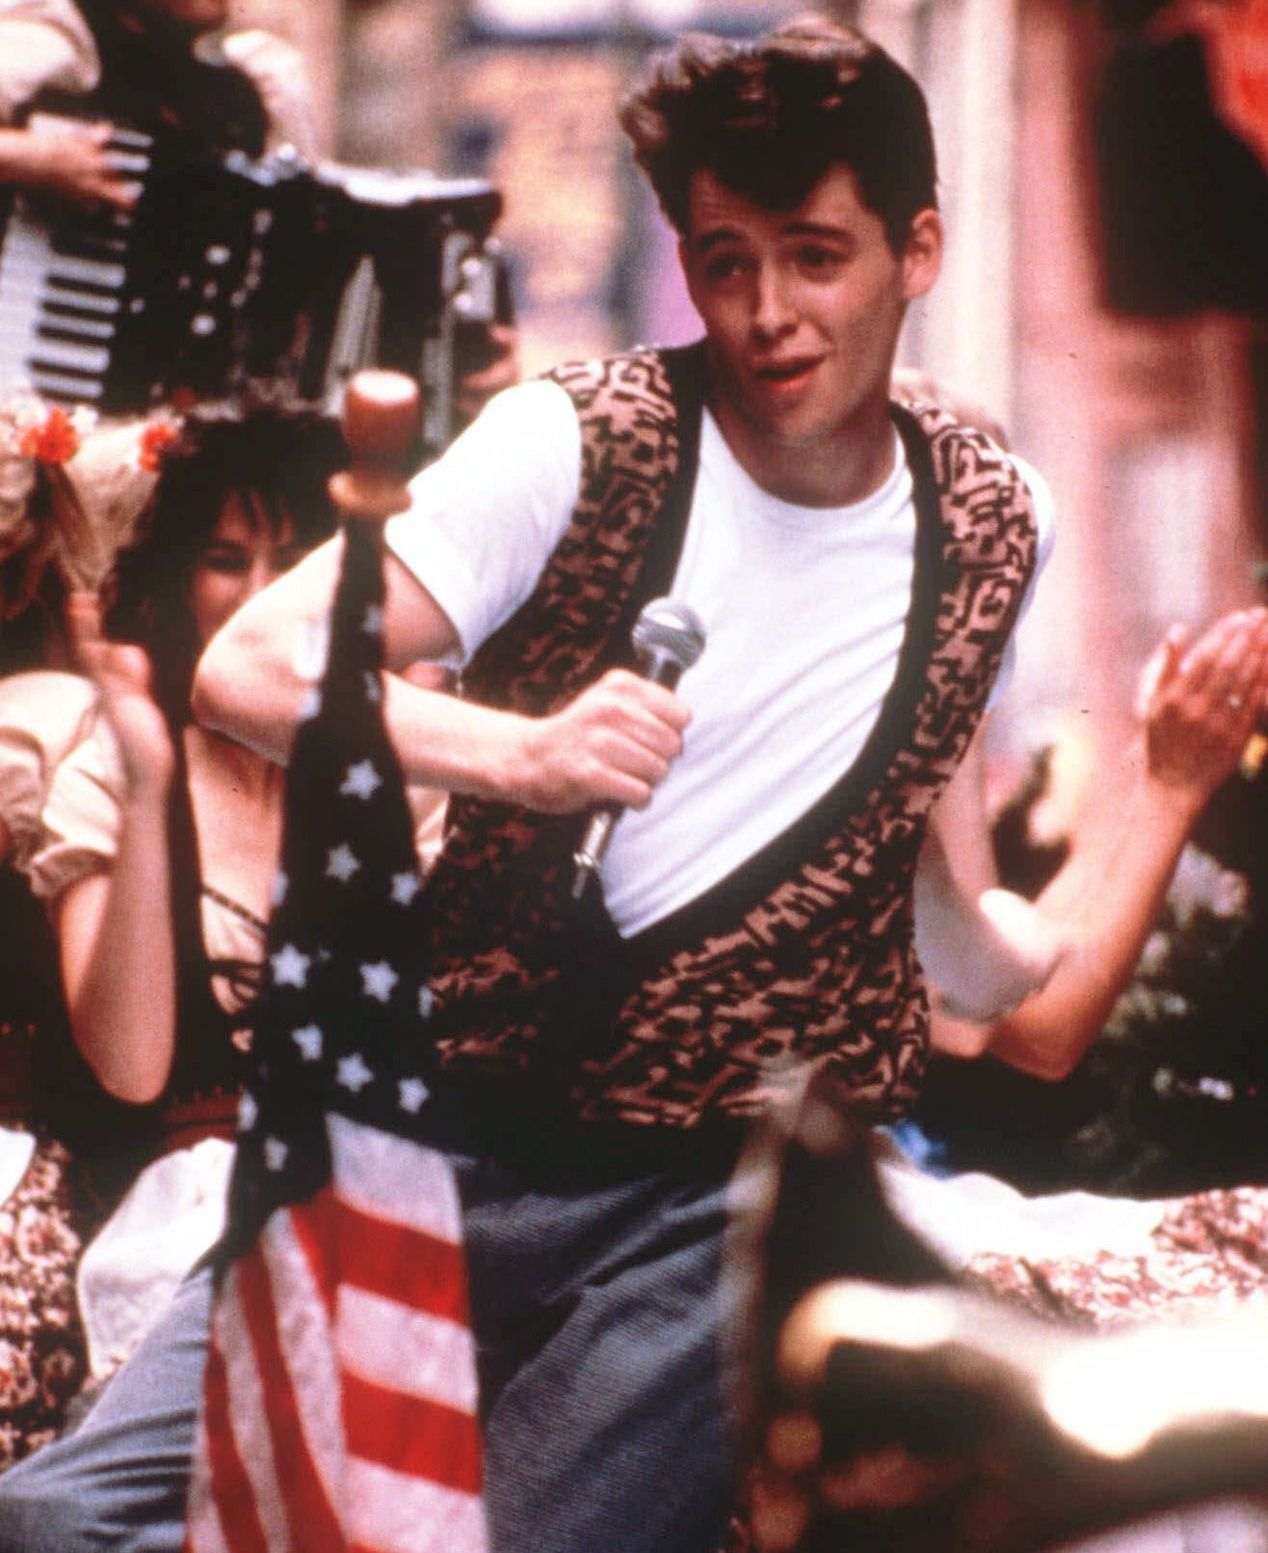 2d57524ea004782c73de77070c719338 20 Things You Probably Didn't Know About Ferris Bueller's Day Off